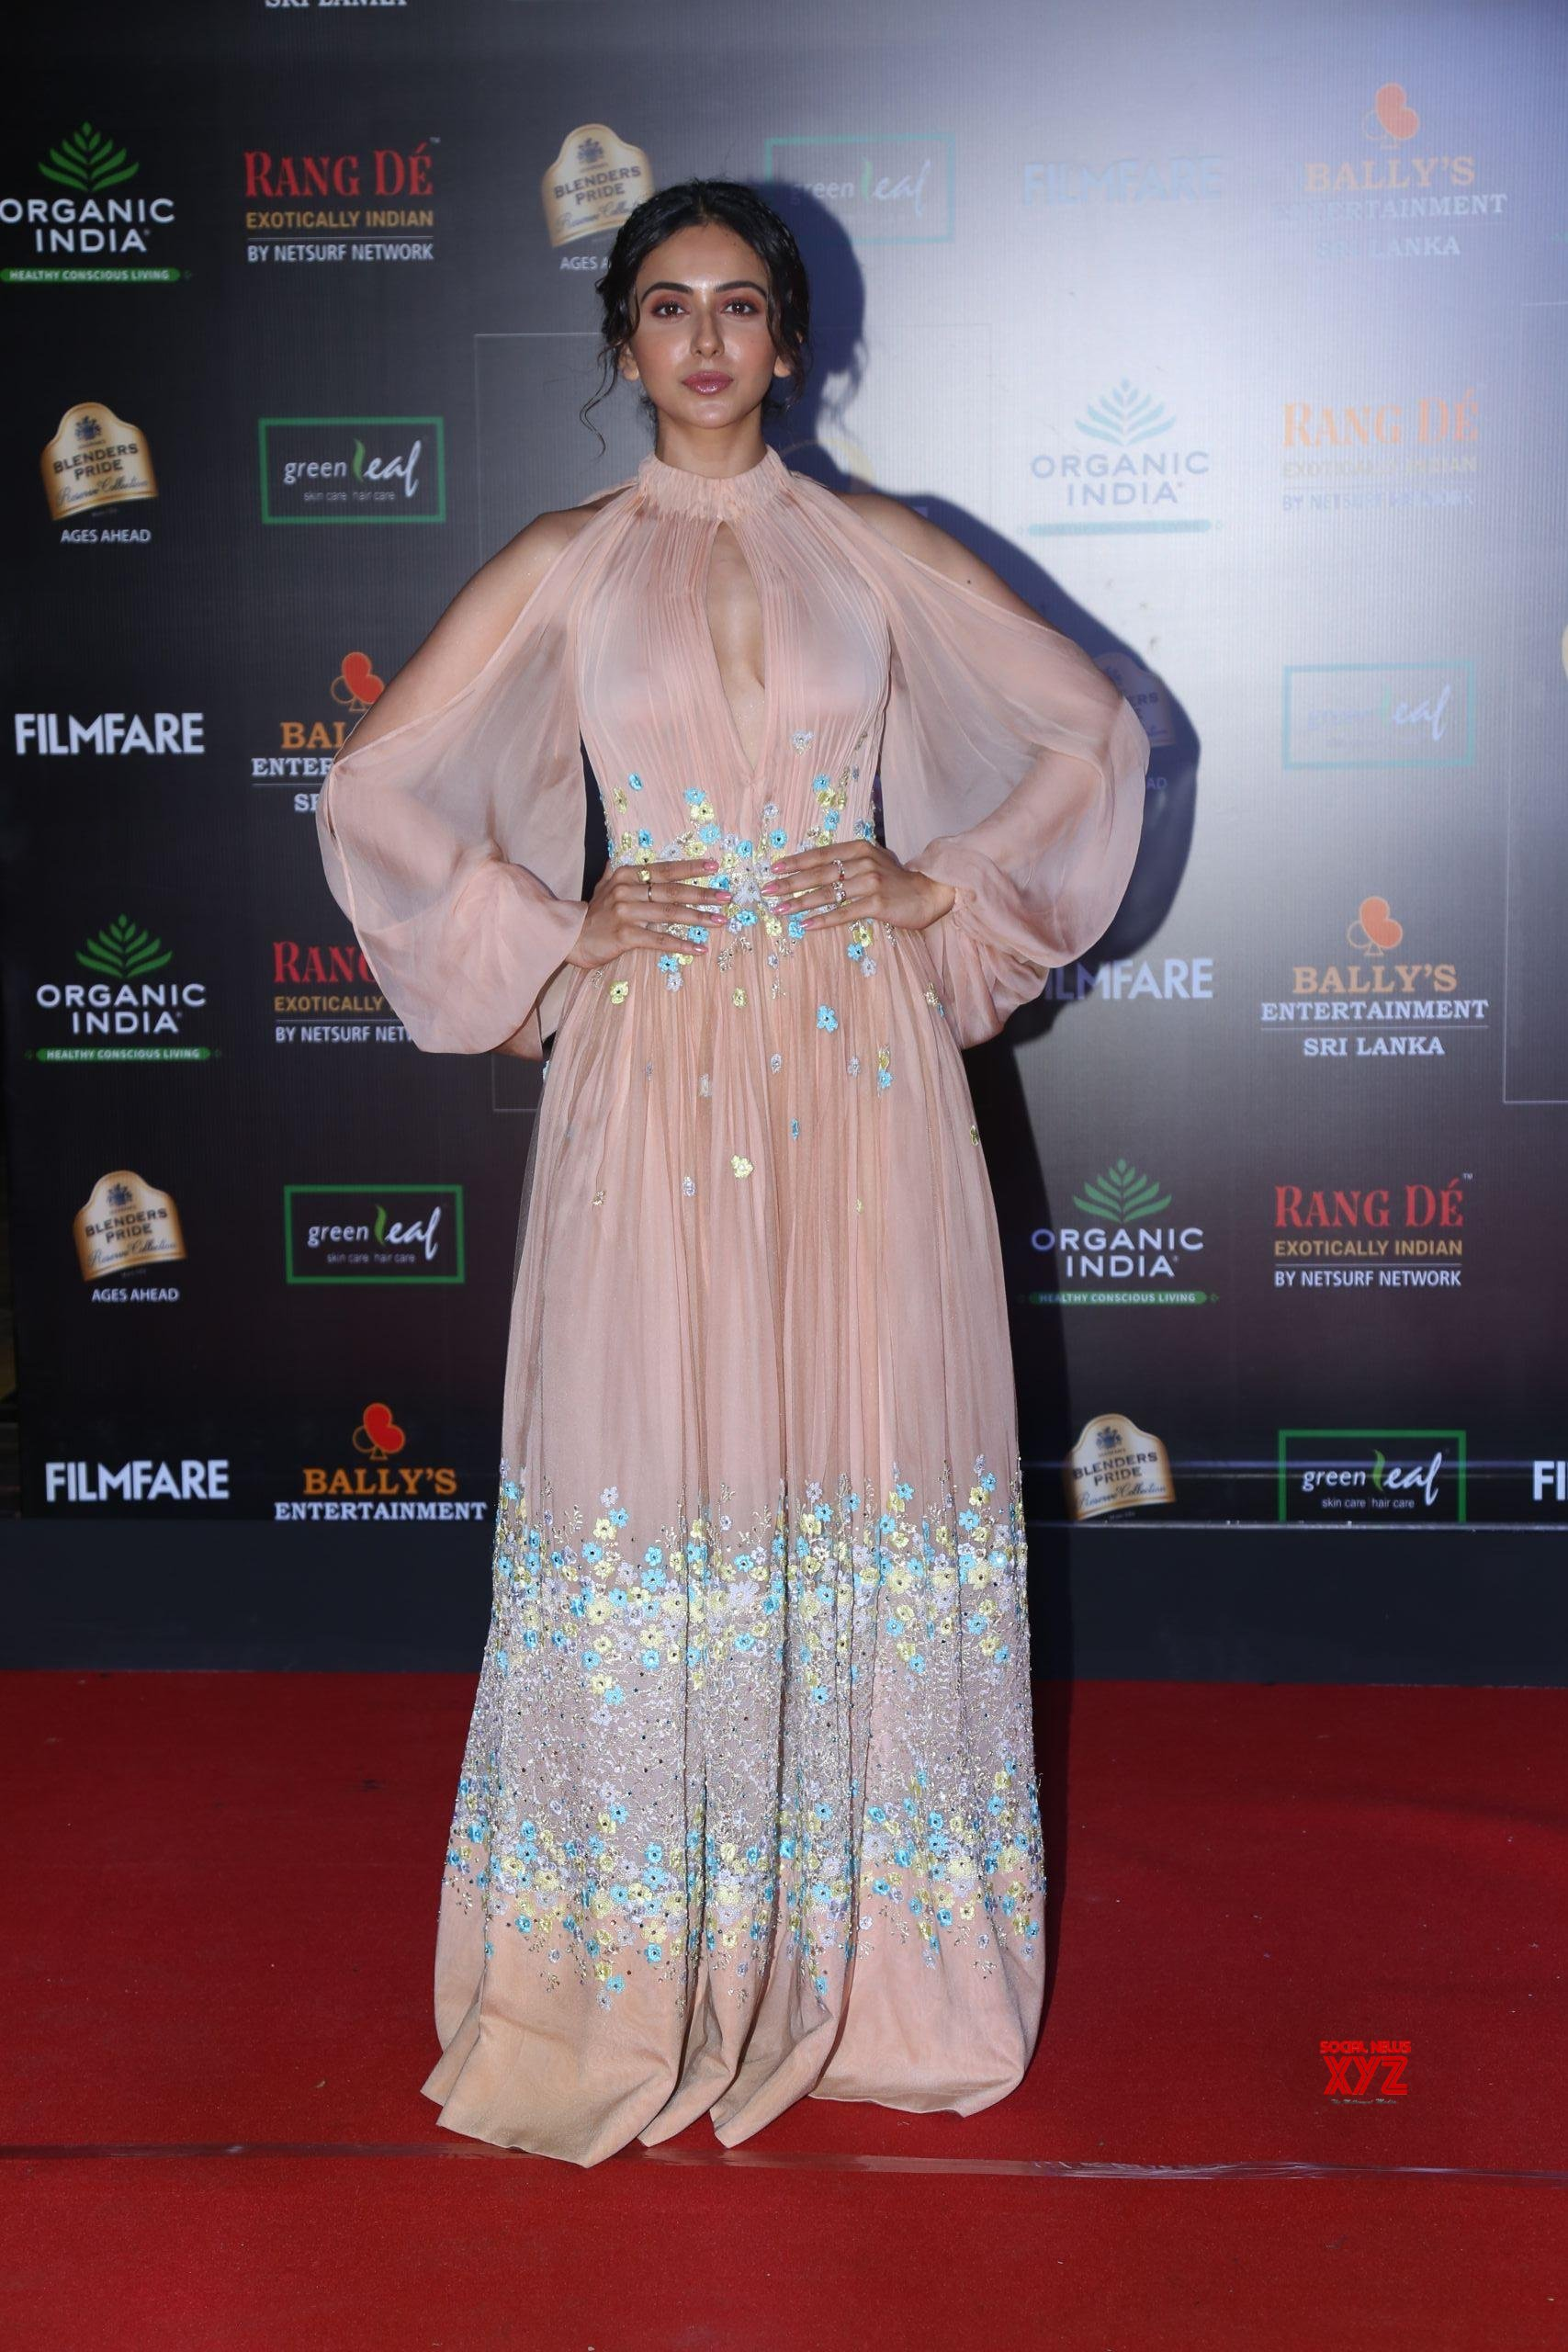 Actress Rakul Preet Singh Hot HD Stills From Filmfare Glamour And Style Awards 2019 Red Carpet